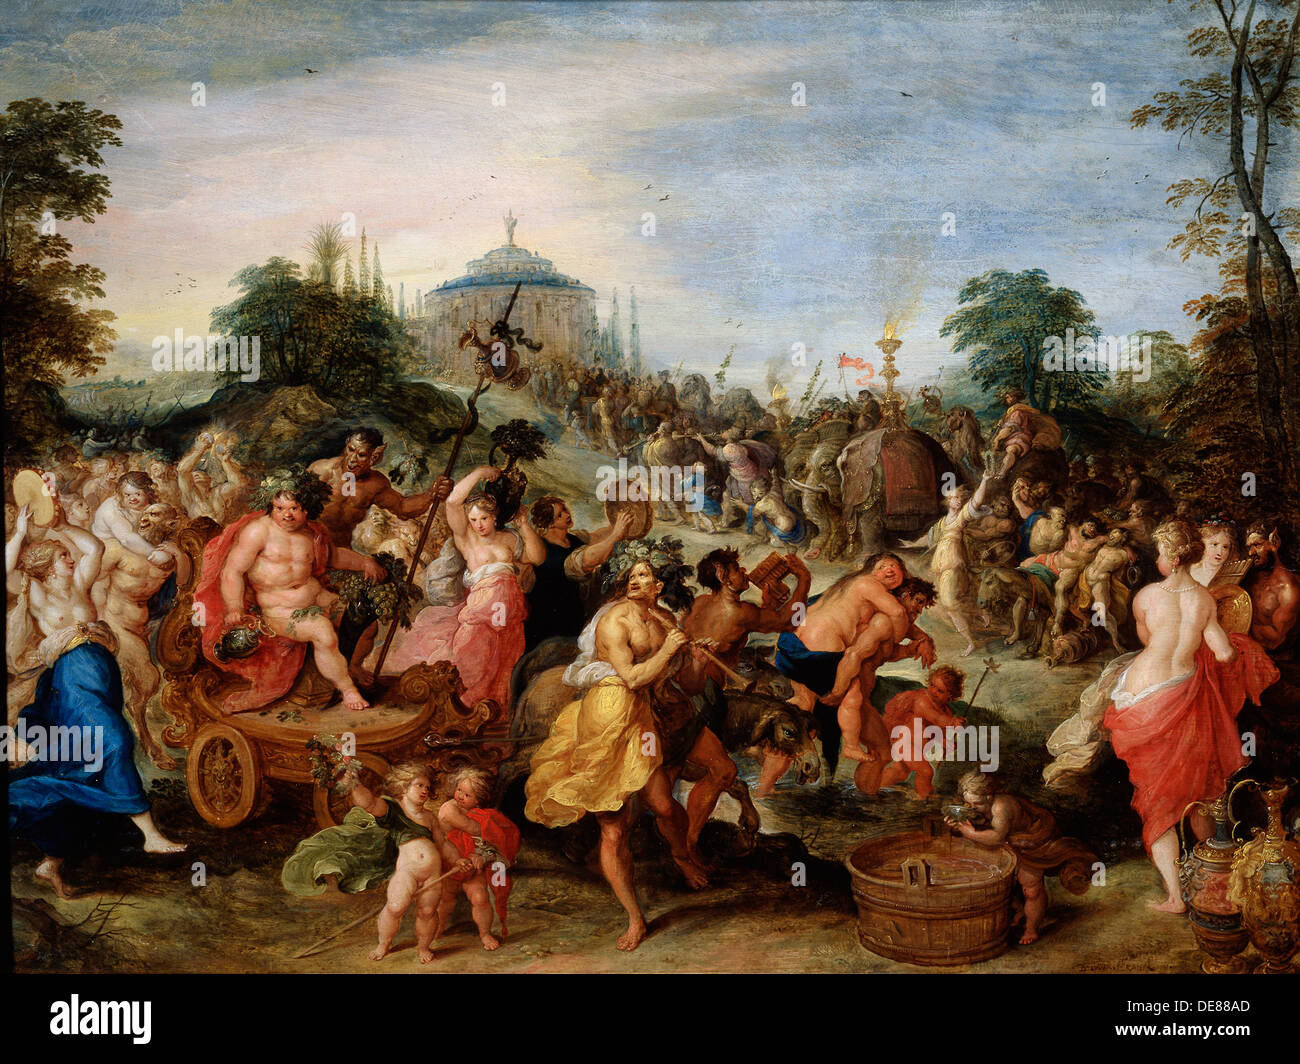 'Bacchus Procession', 17th century. Artist: Frans Francken II Stock Photo